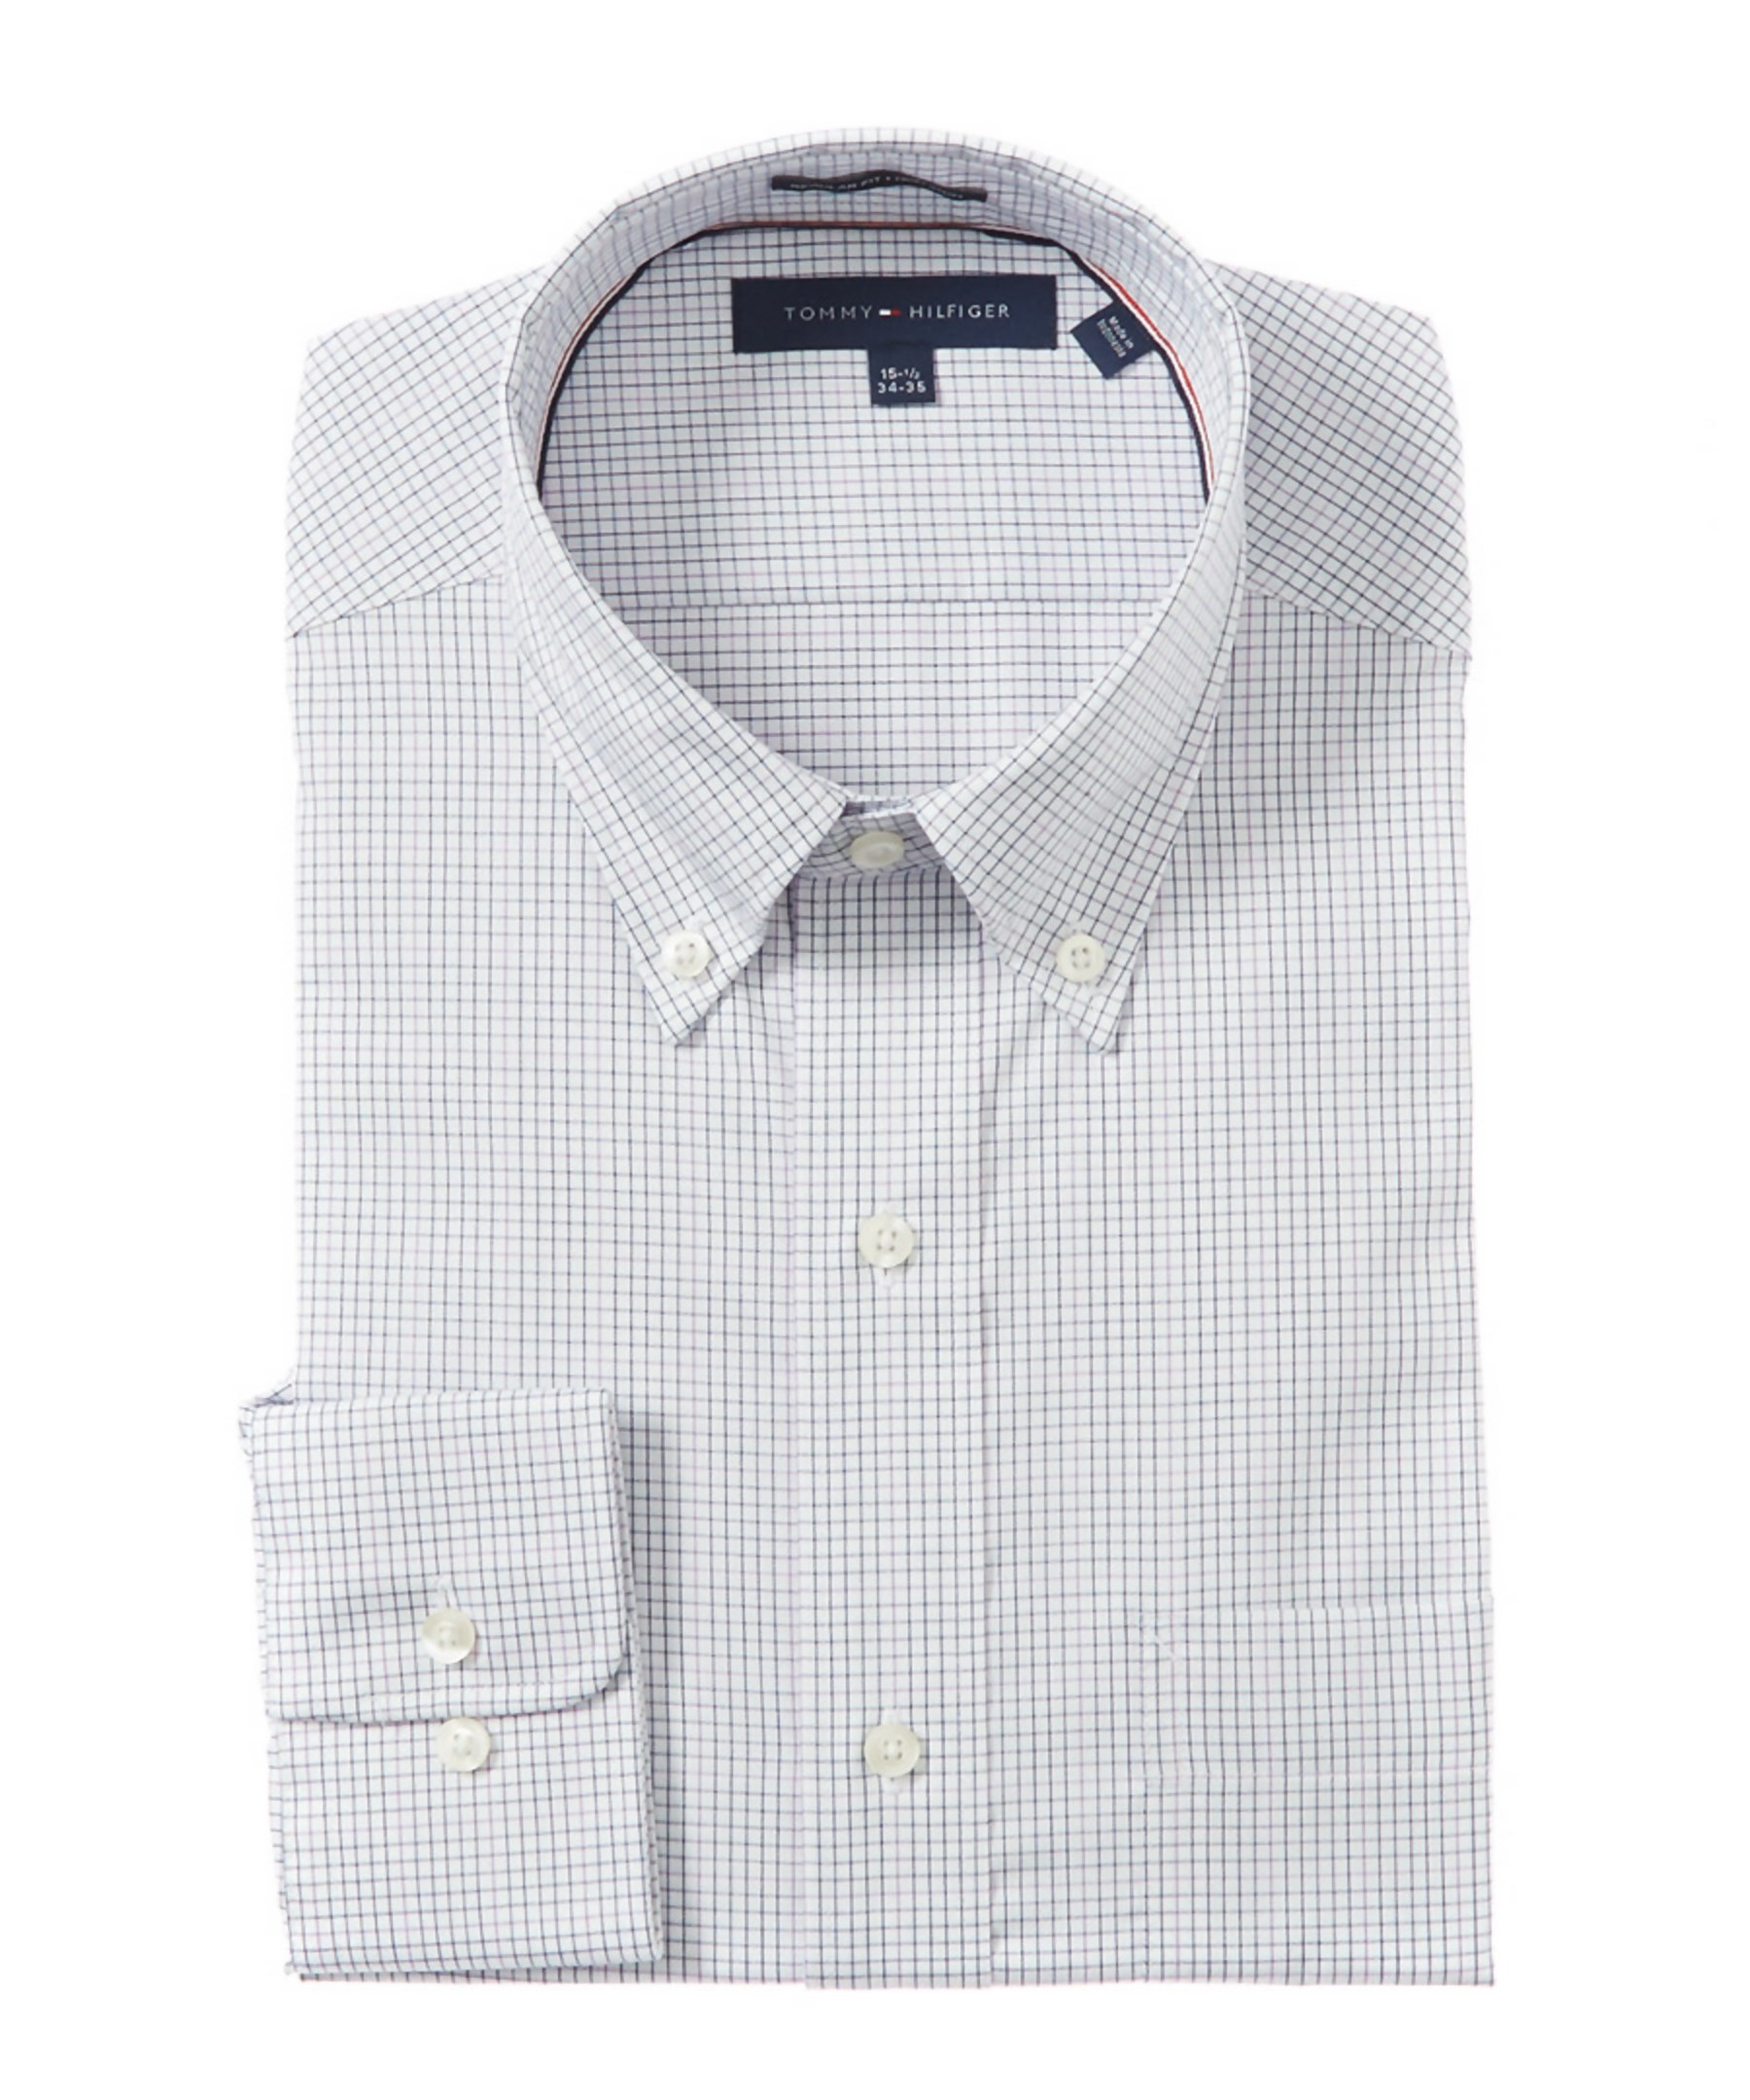 Tommy Hilfiger Classic Fit Dress Shirt In Purple For Men